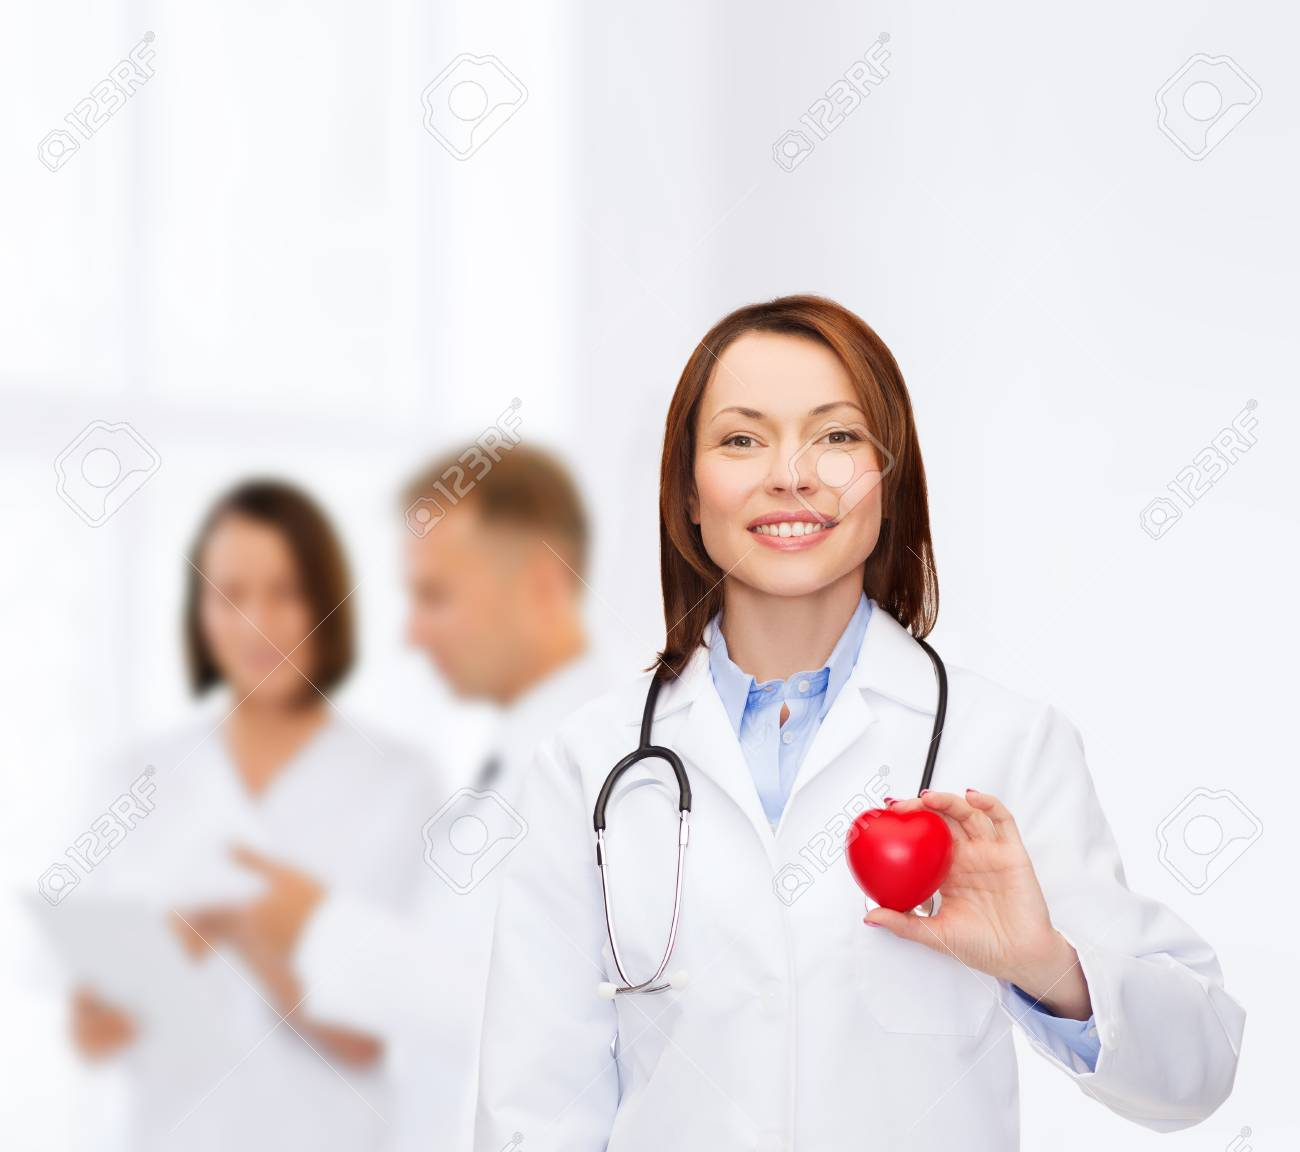 healthcare and medicine concept - smiling female doctor with heart and stethoscope Stock Photo - 26175586